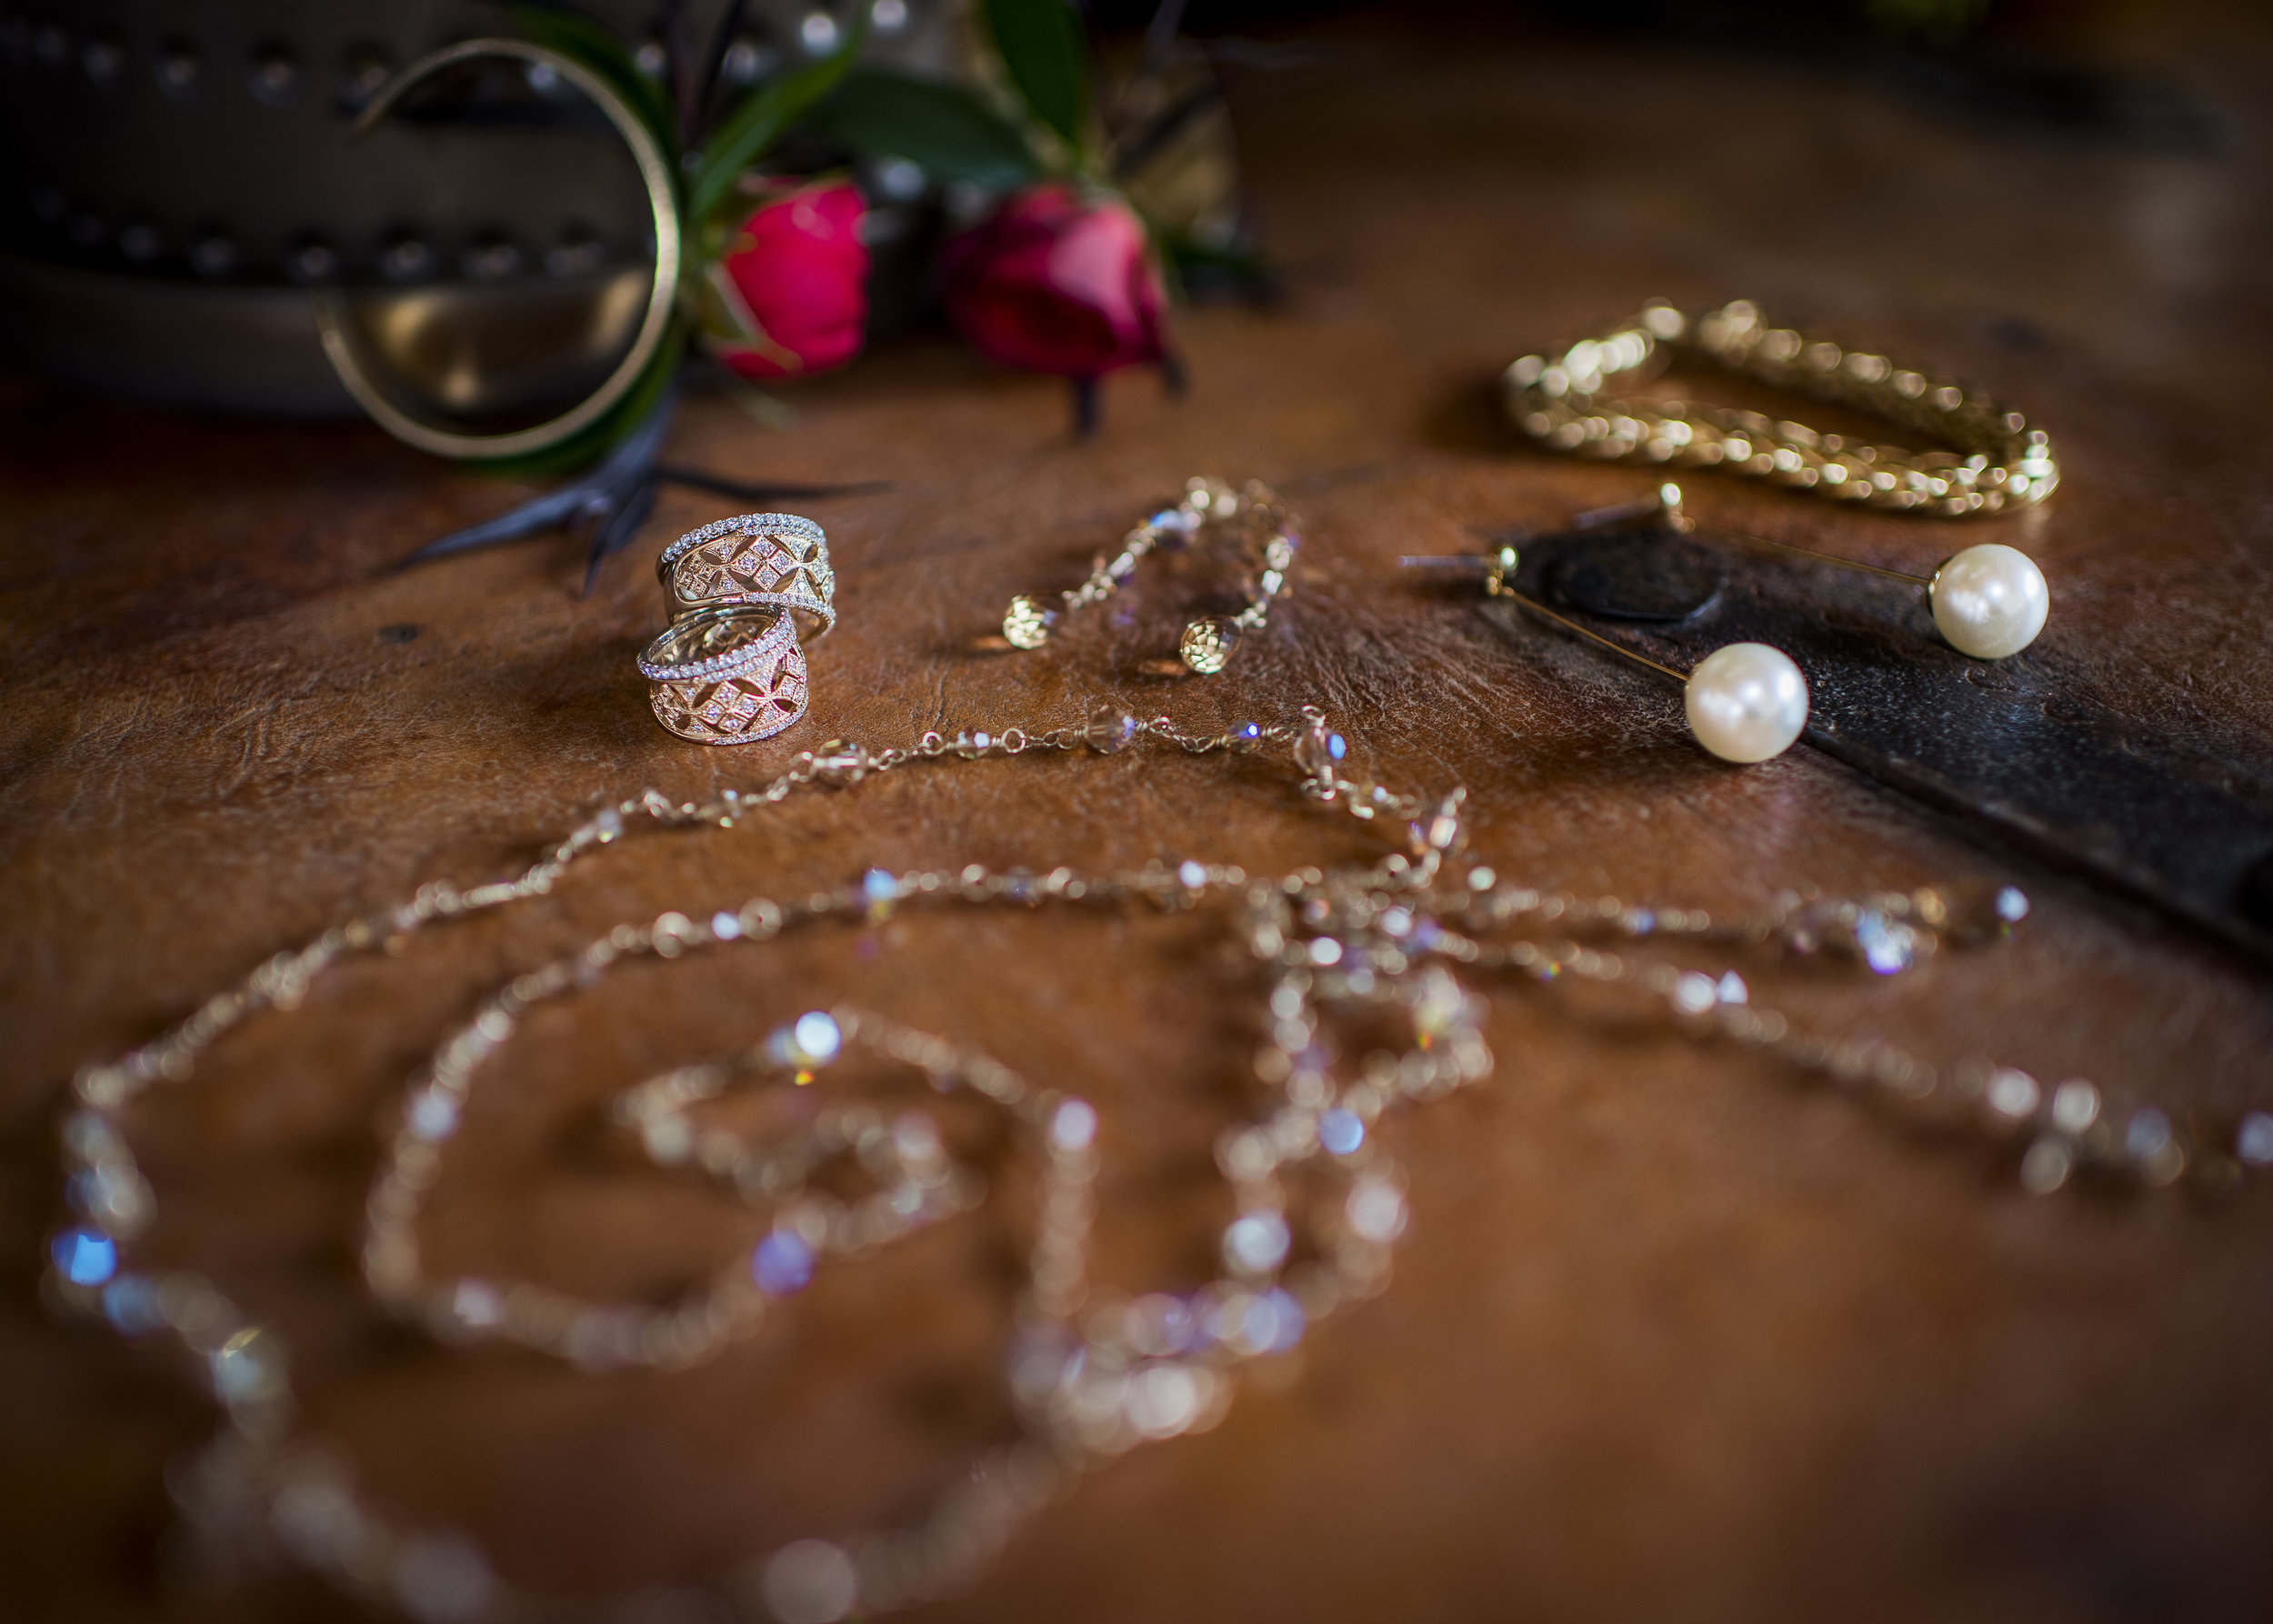 www.santabarbarawedding.com | Willa Kveta Photography | Private Estate | Savoir Faire | Couple's Wedding Day Jewelry